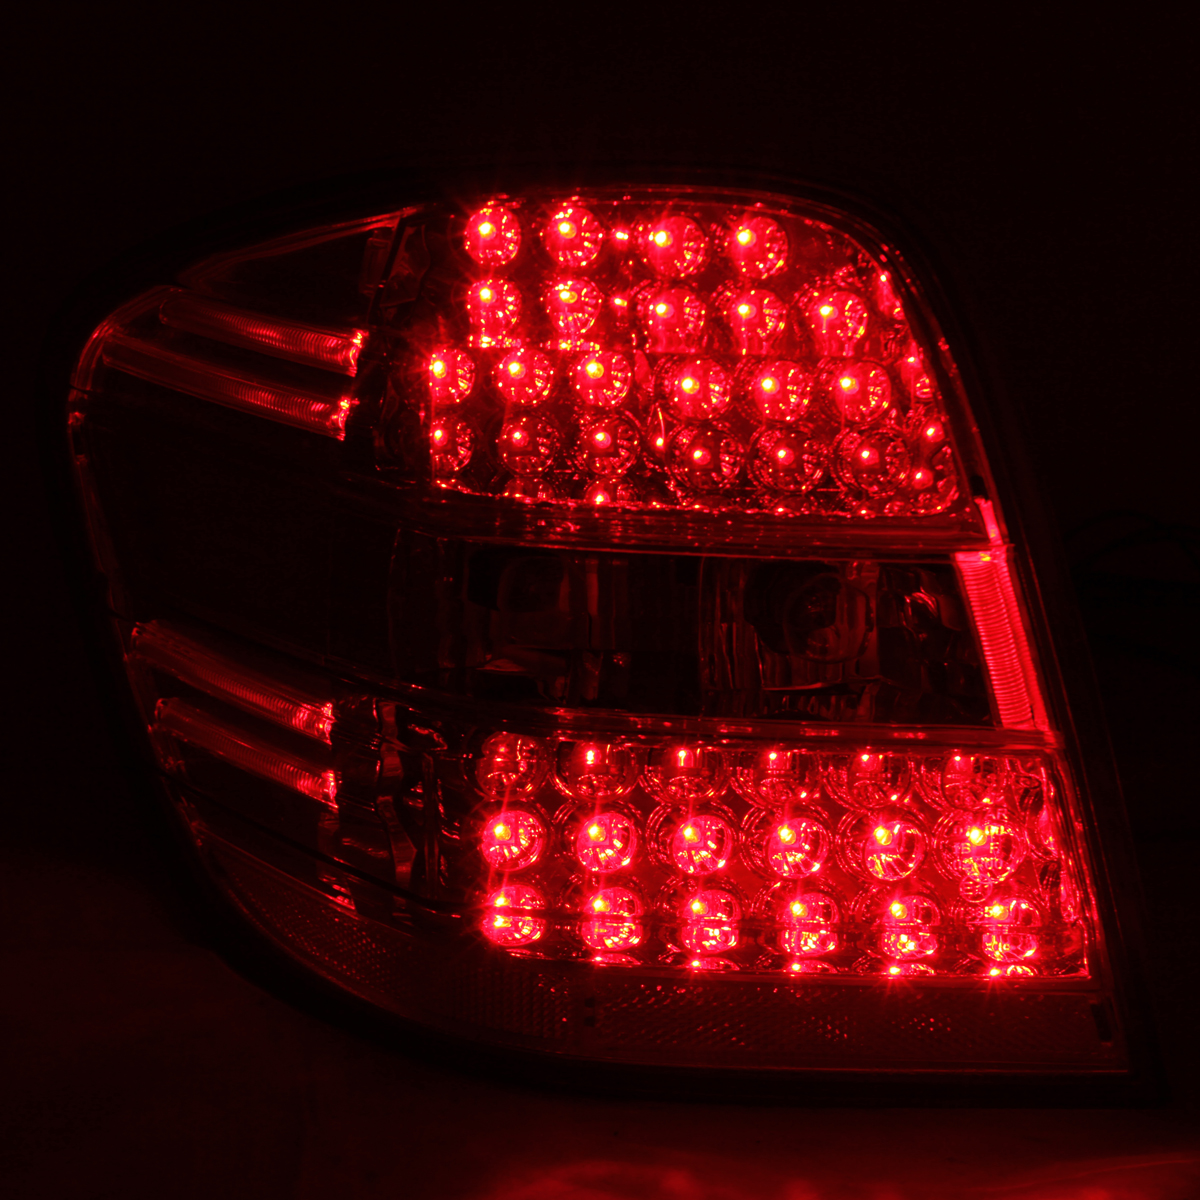 2006 2009 mercedes benz w164 ml class ml320 ml350 led for Led light for mercedes benz